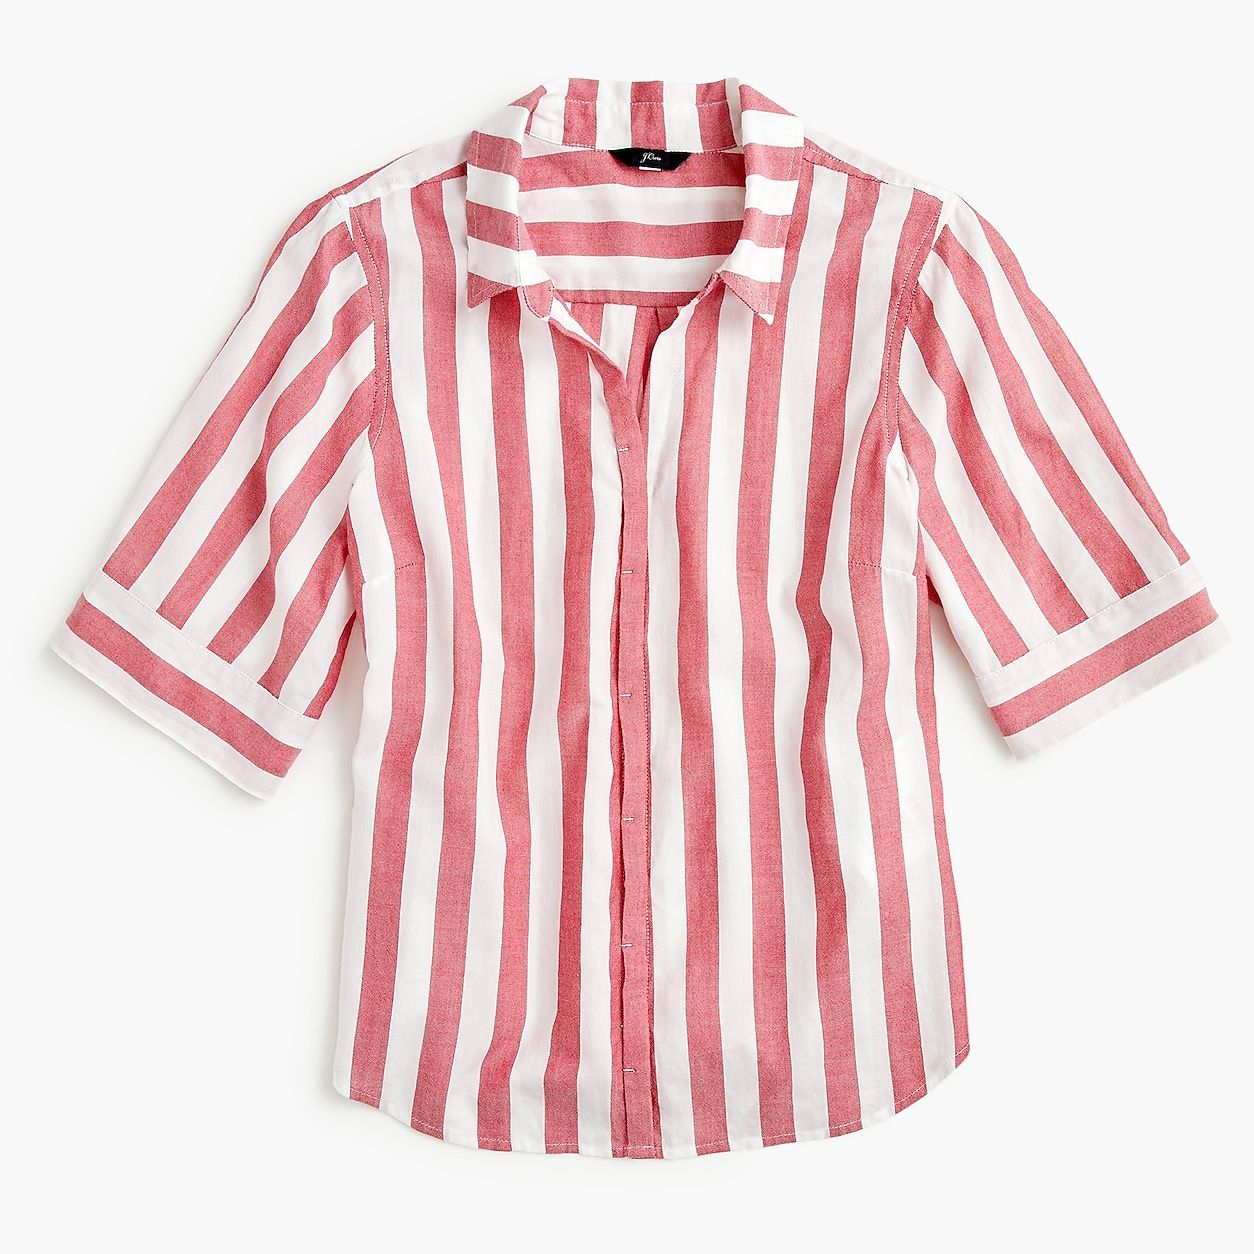 fa03653ca4a210 ... Women s Shirts. Petite Short-Sleeve Button-Up Shirt In Wide Stripe